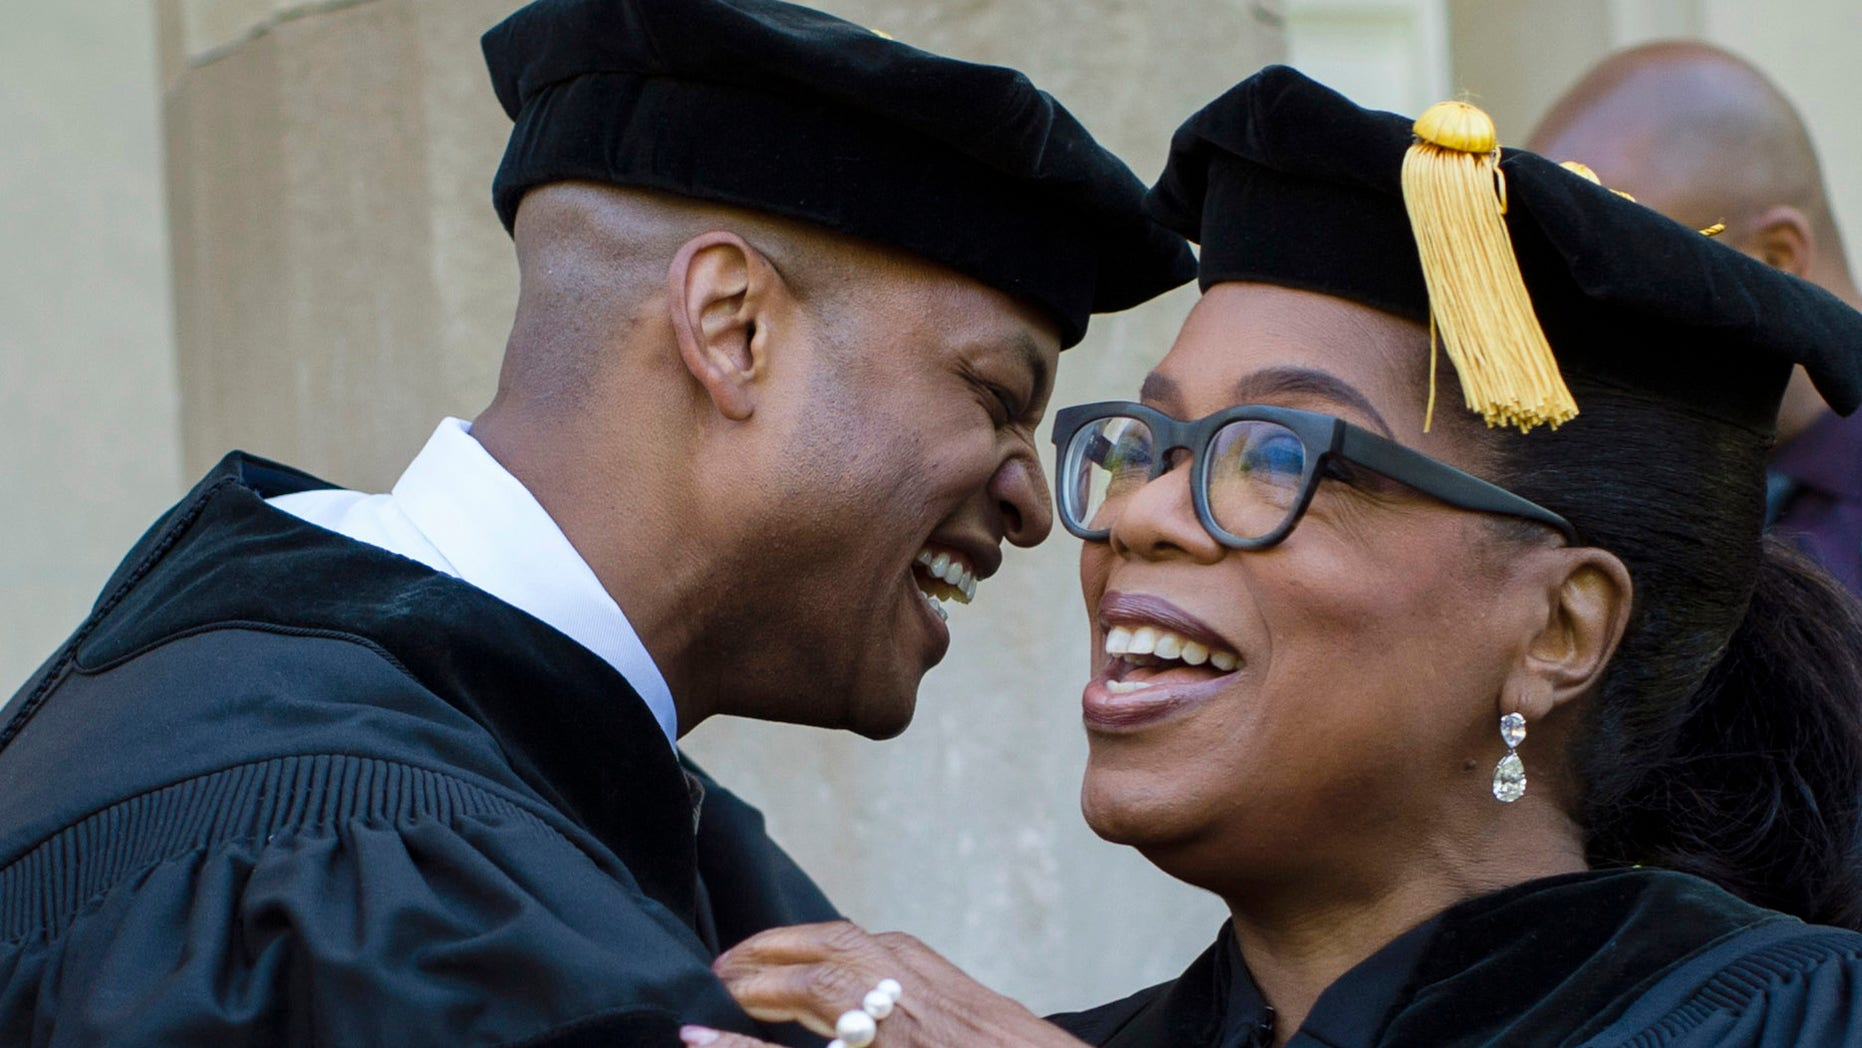 In this photo provided by Skidmore College, author Wes Moore embraces Oprah Winfrey at Skidmore College's 106th Commencement, Saturday, May 20, 2017 at the Saratoga Performing Arts Center, in Saratoga Springs, N.Y. The author, actress and former talk show host spoke at the graduation. (Erin Covey/Skidmore College via AP)